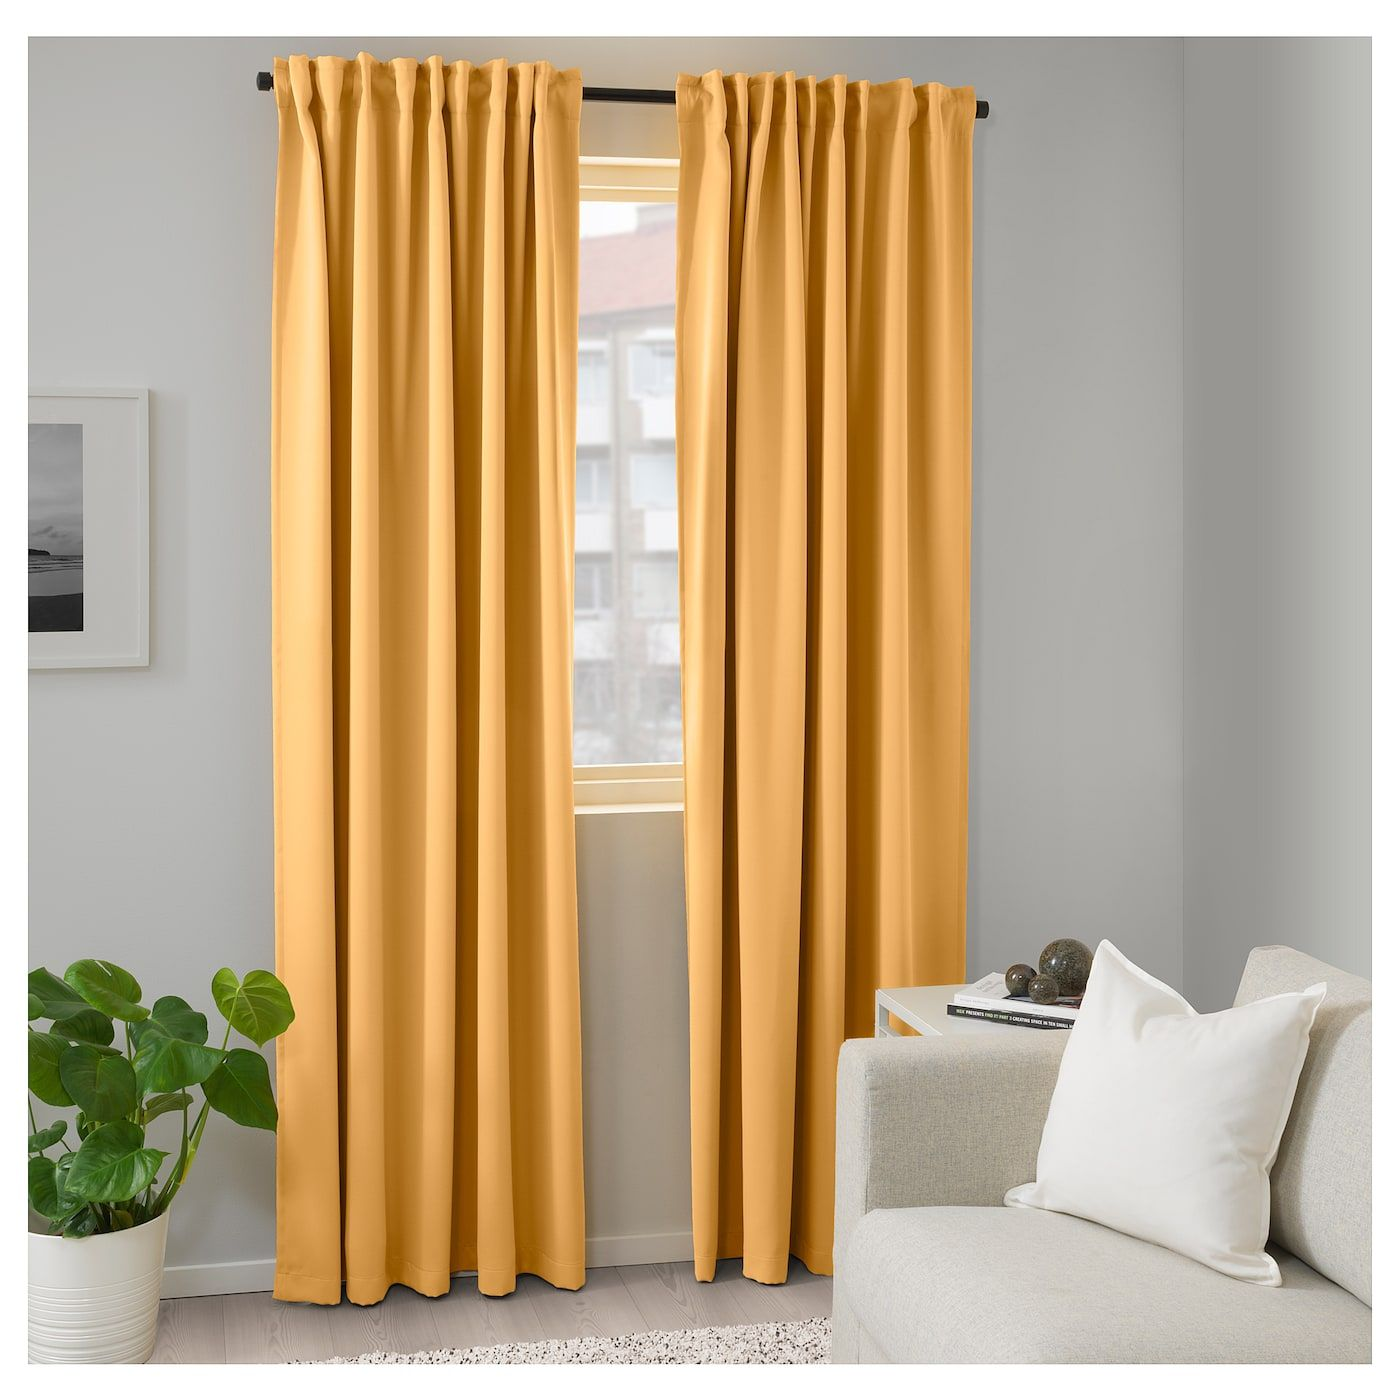 Majgull Room Darkening Curtains 1 Pair Yellow Ikea Yellow Curtains Room Darkening Brown Rooms